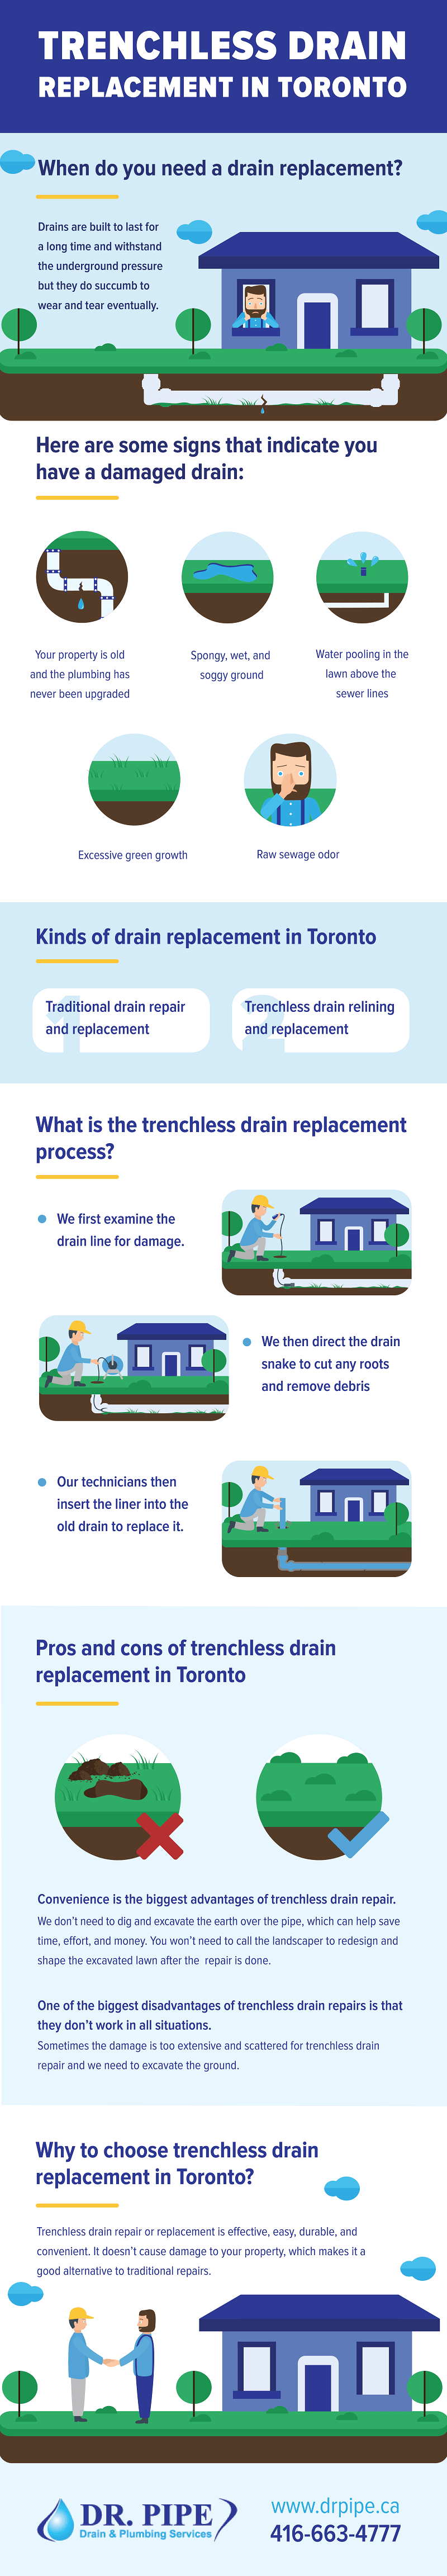 Trenchless Drain Replacement Process in Toronto. DrPipe